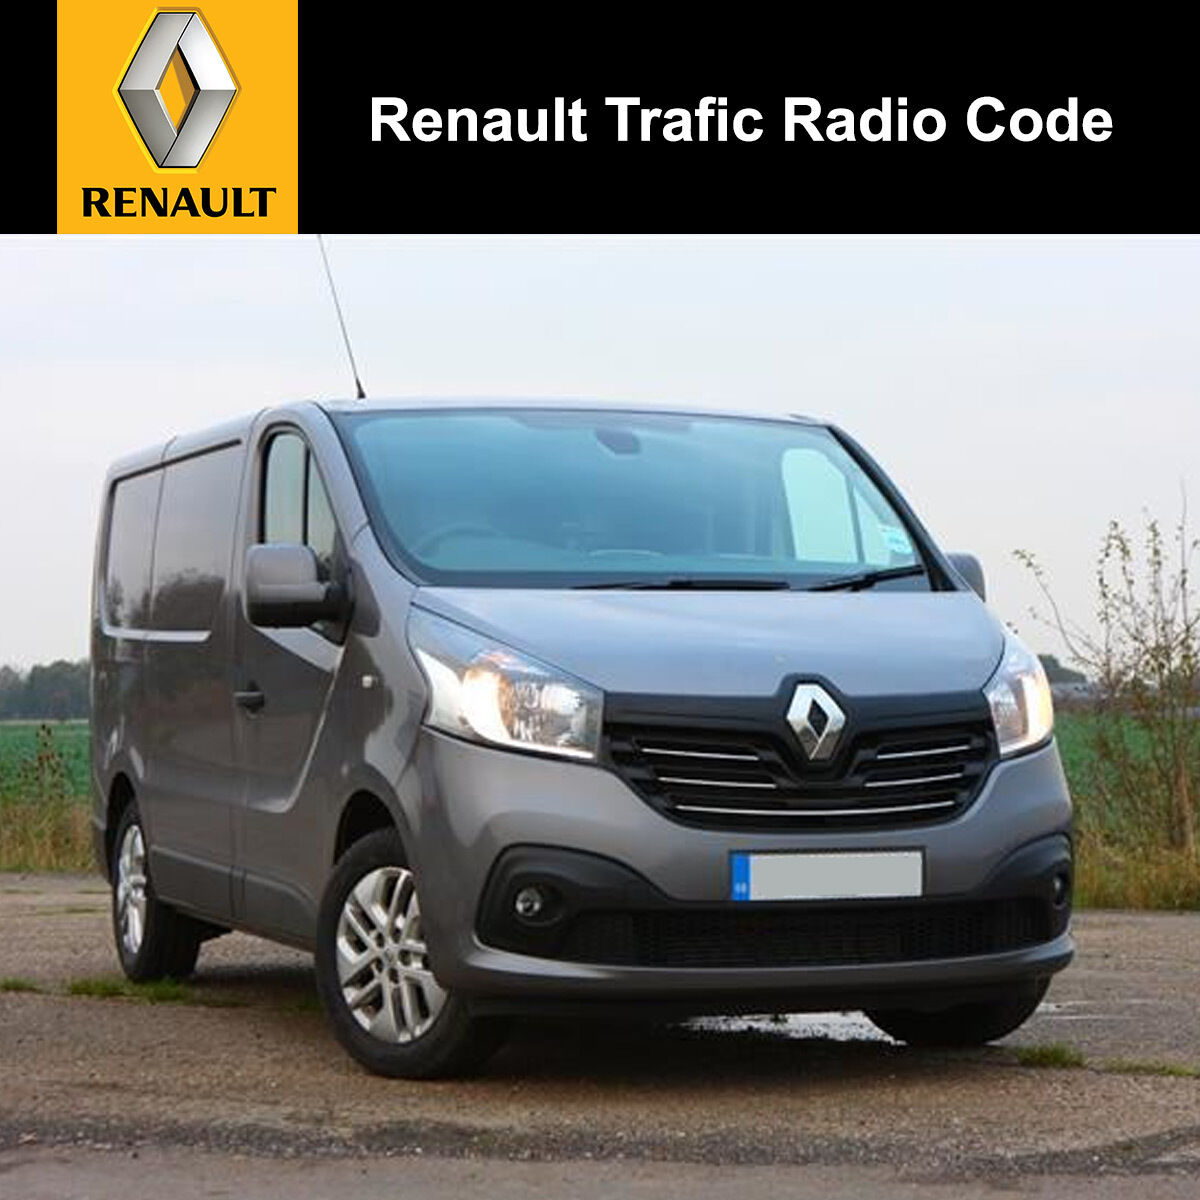 renault trafic radio code stereo decode car unlock fast service uk all vehicles ebay. Black Bedroom Furniture Sets. Home Design Ideas